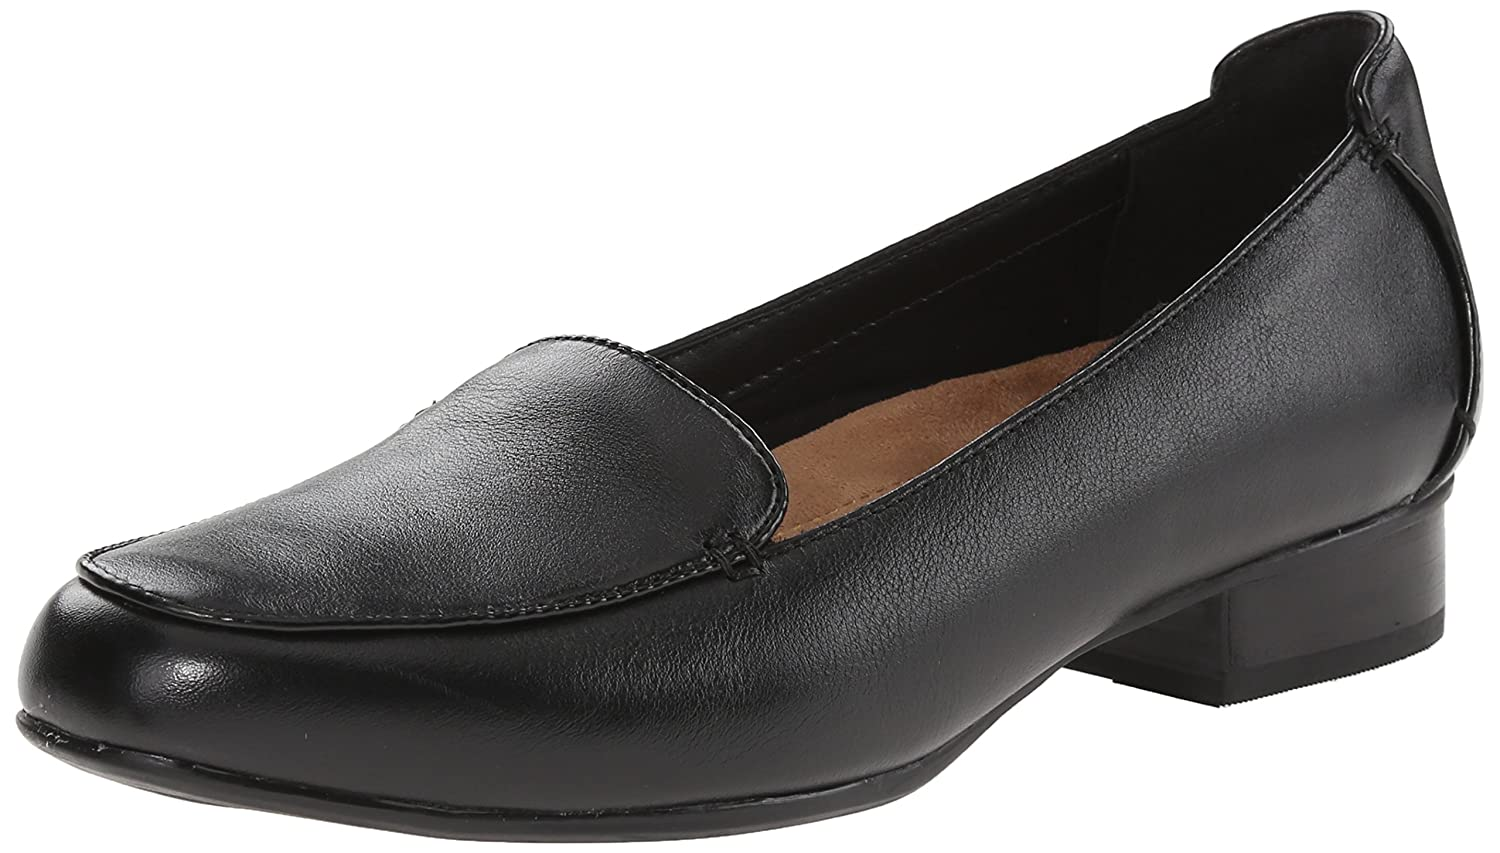 CLARKS Women's Keesha Luca Slip-On Loafer B00T3IMT9U 8.5 N US|Black Leather